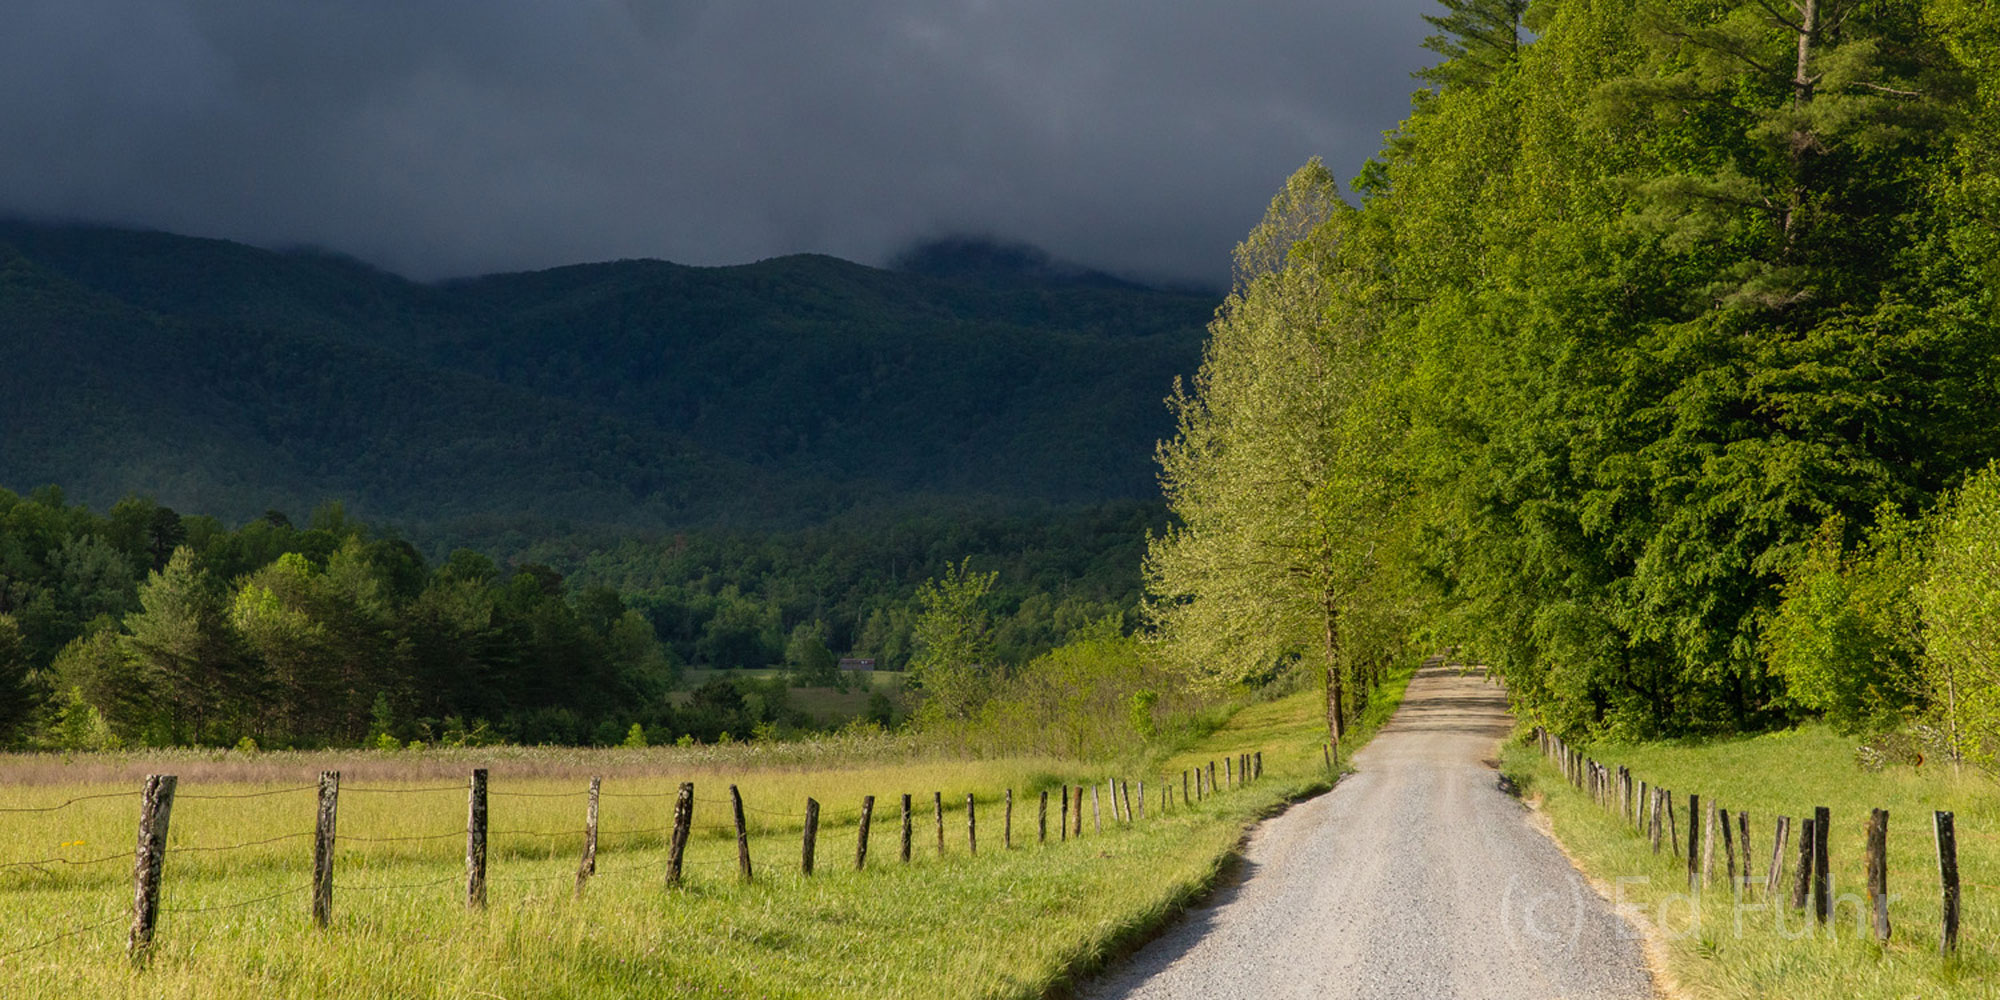 Hyatt Lane and Approaching Storm.  Hyatt Lane bisects Cades Cove and provides access to some of the best wildlife habitat in...